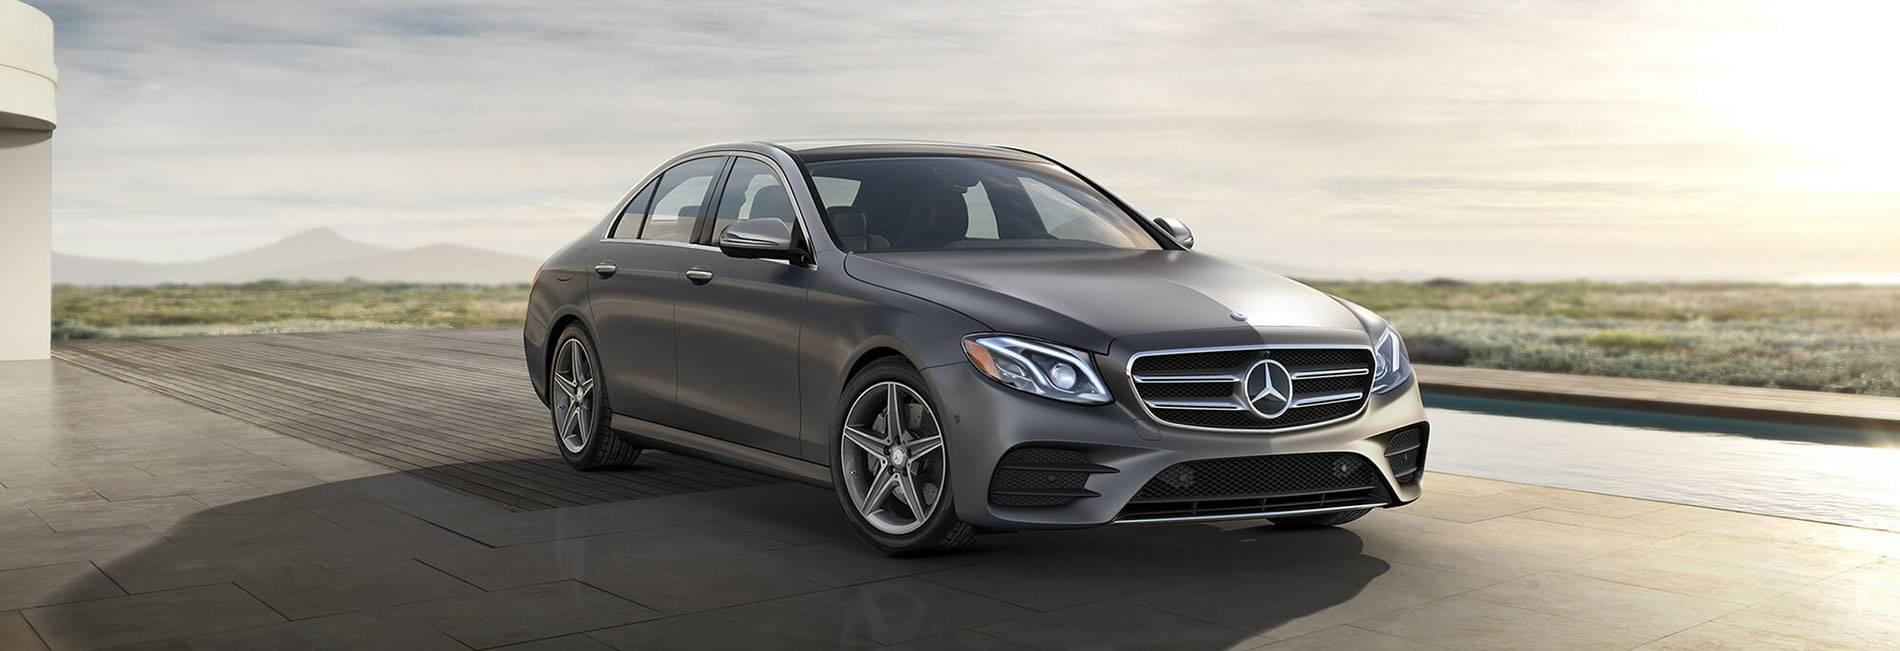 Travel some of ca s best scenic routes in a new mercedes benz for Mercedes benz service sacramento